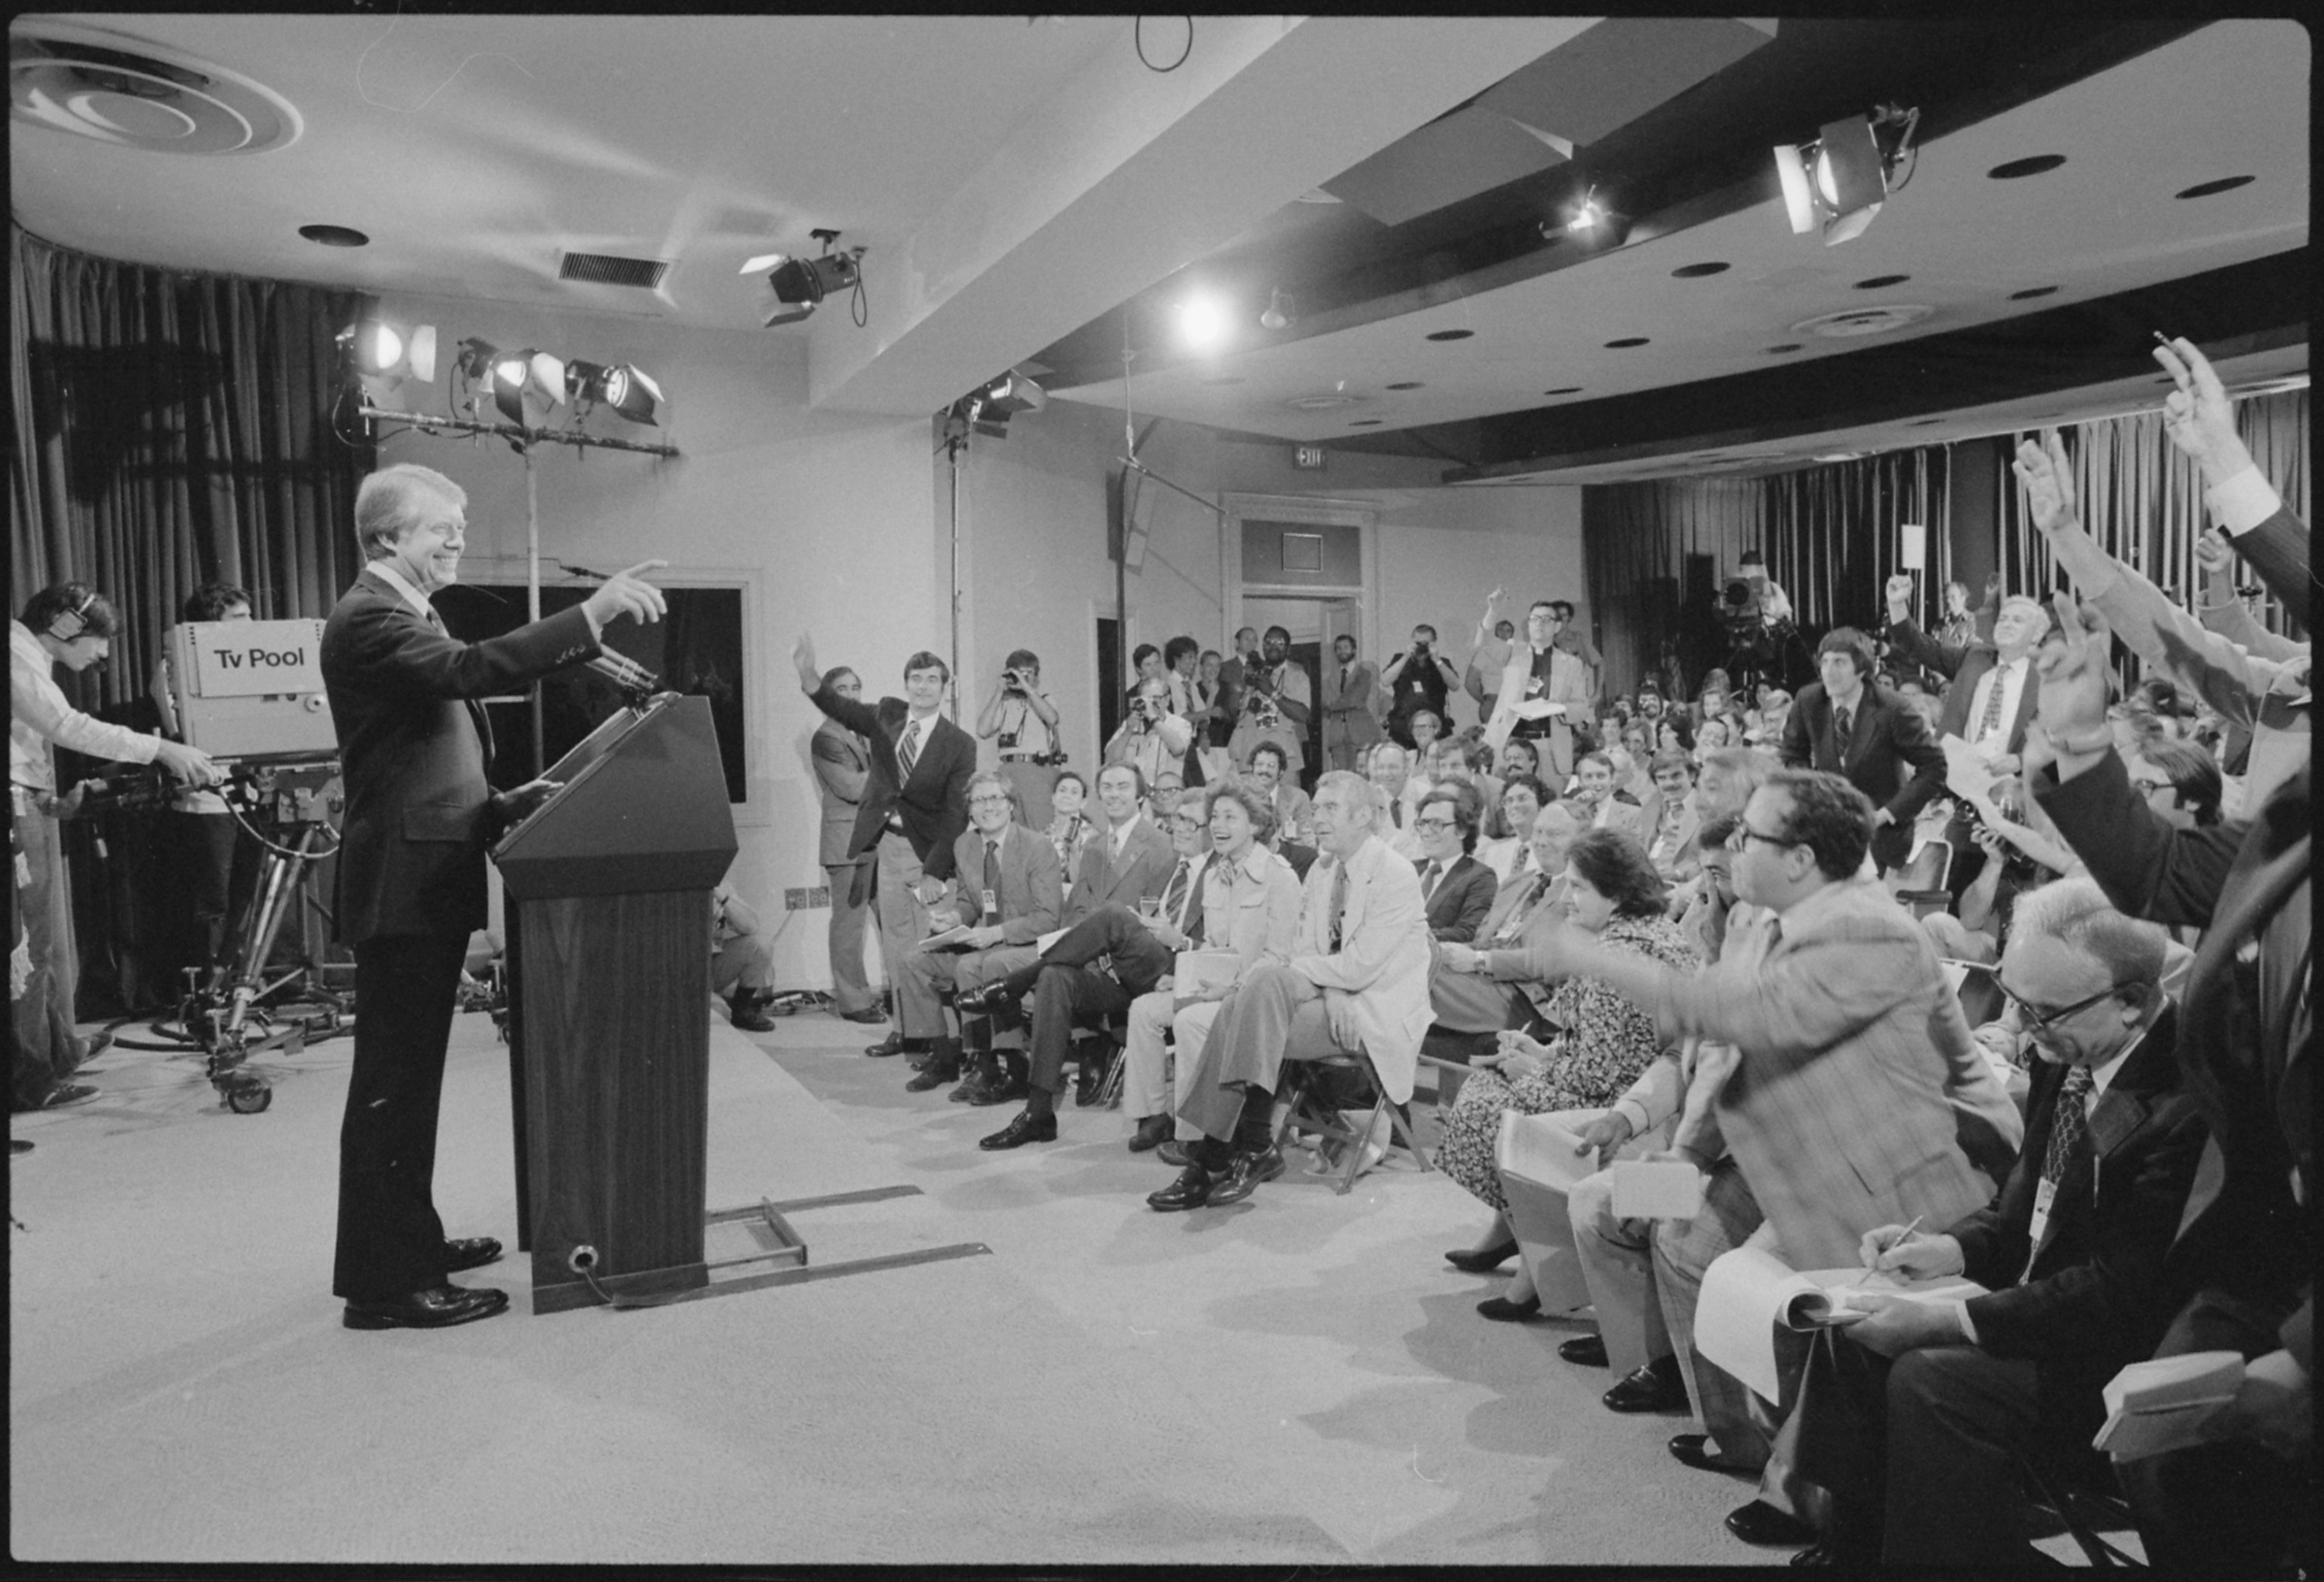 Jimmy Carter holds a press conference